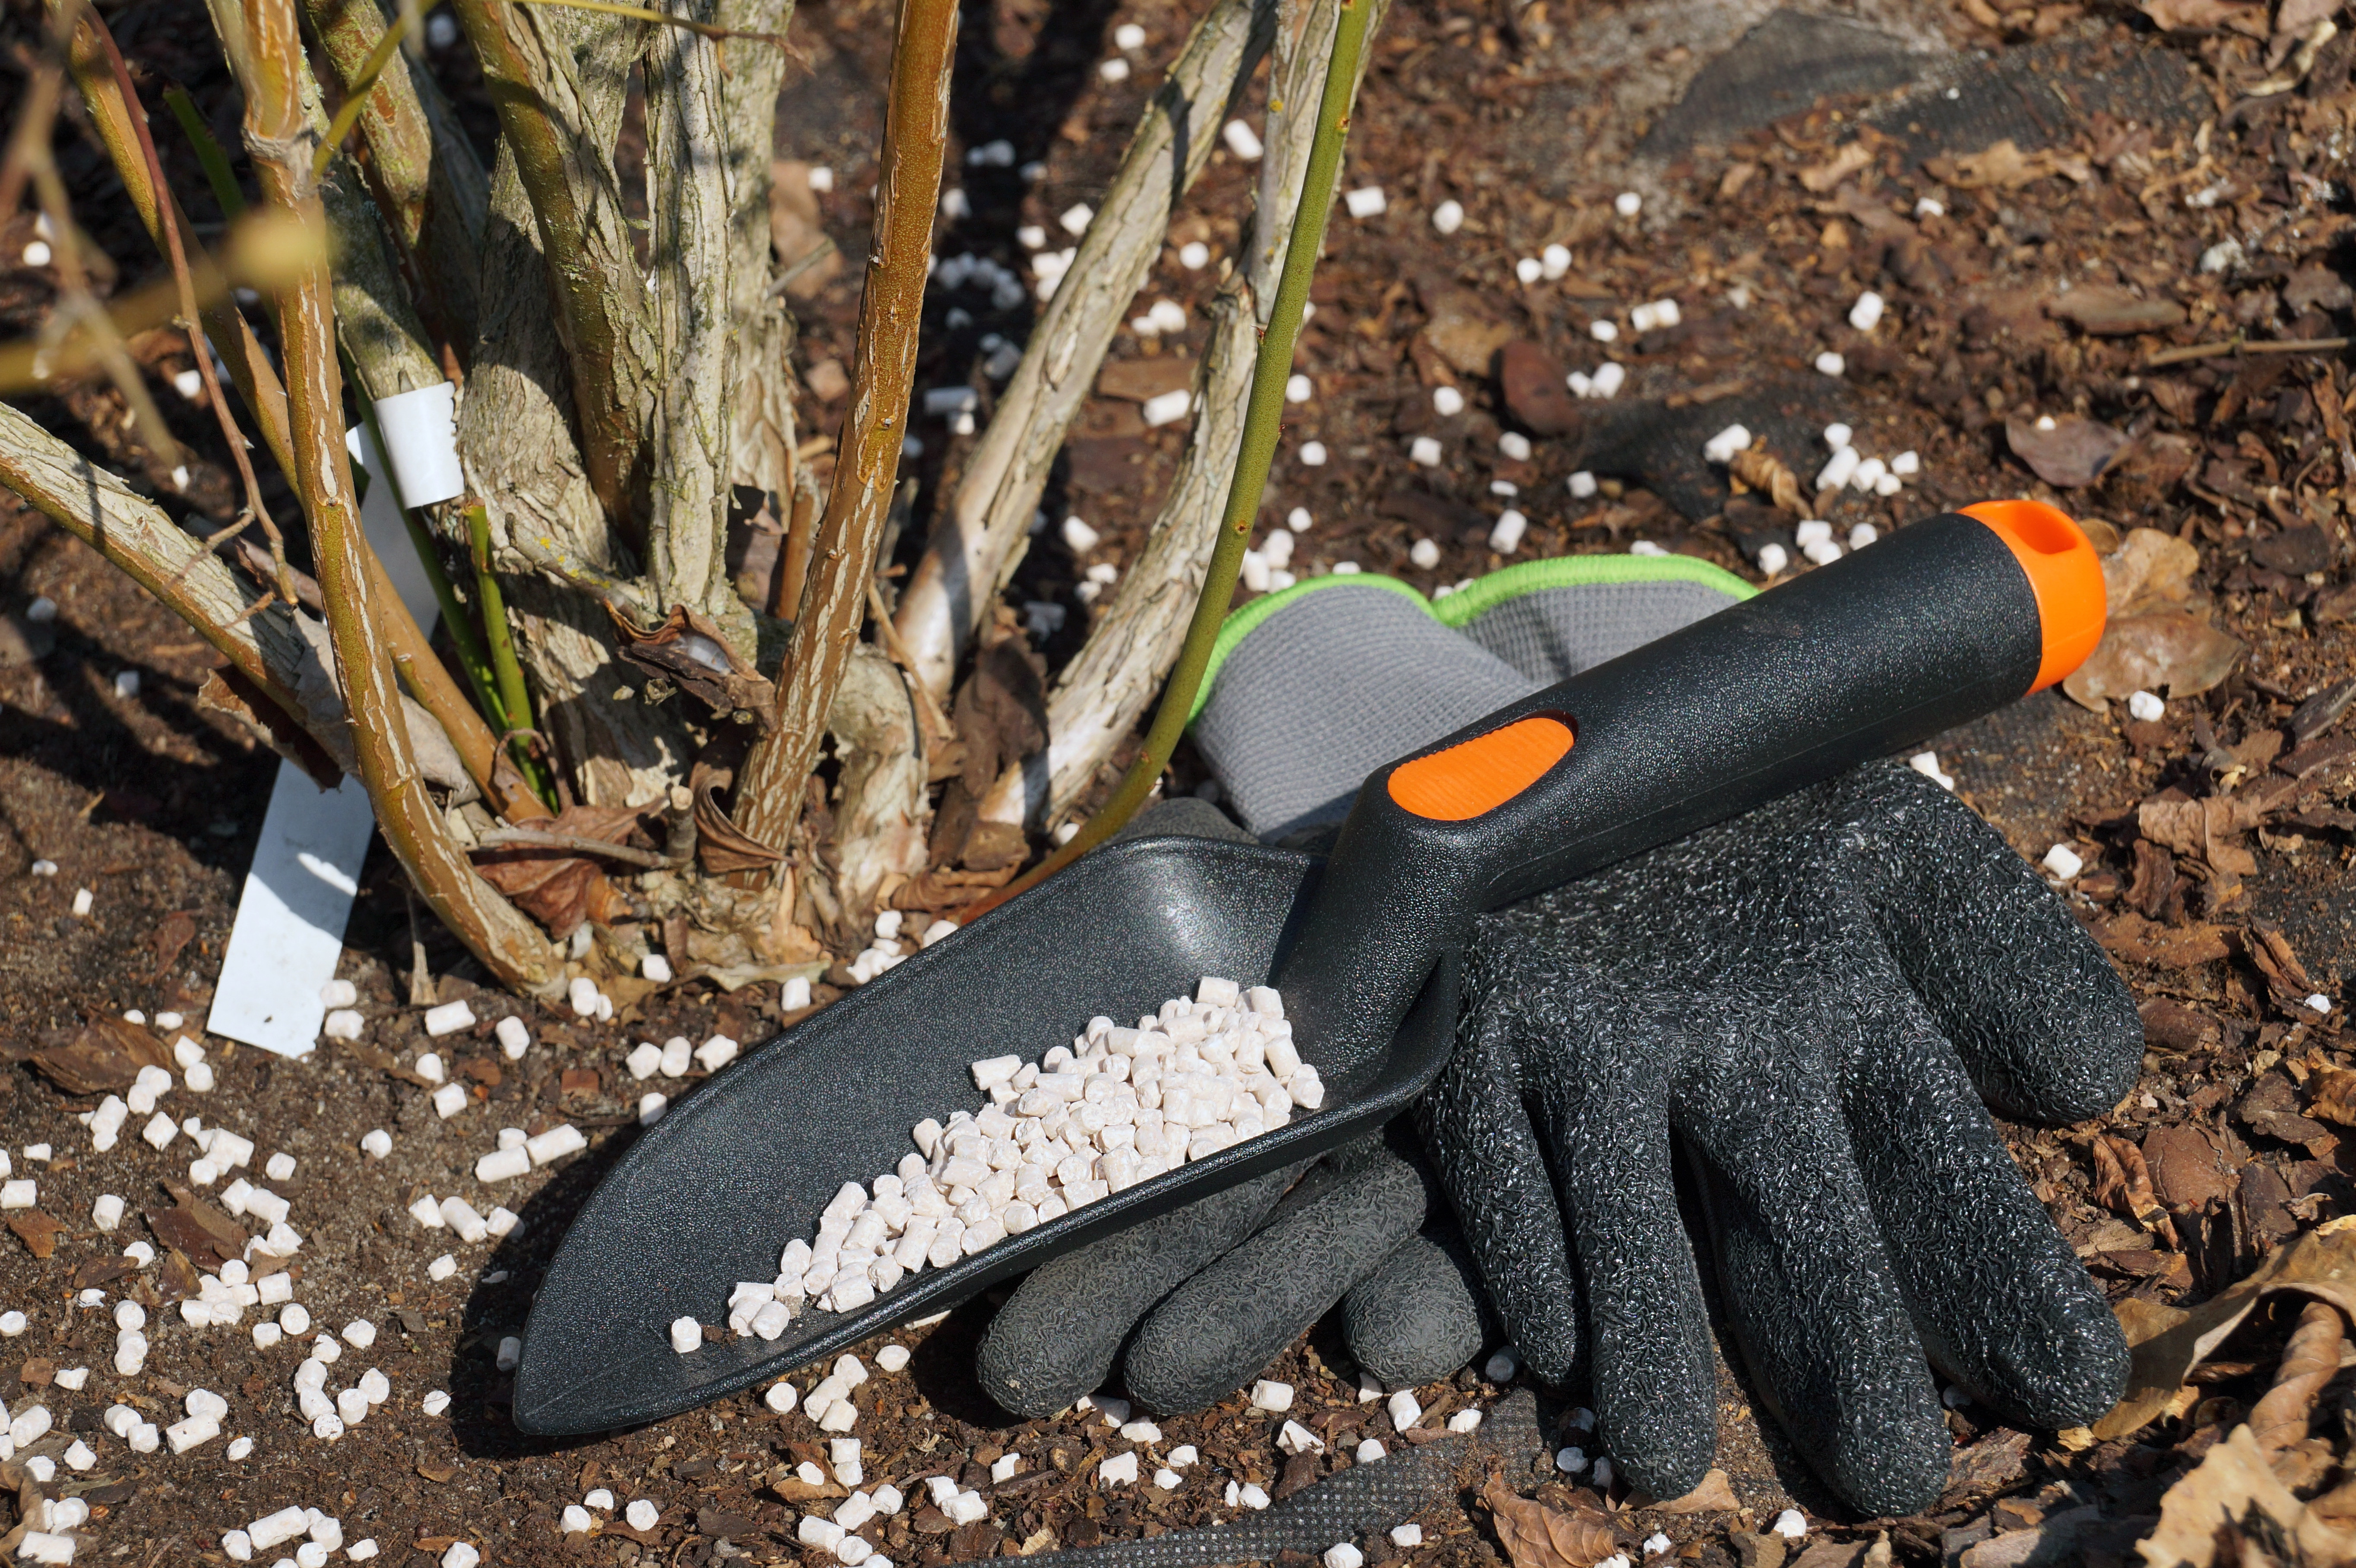 Prepared gloves and a spatula with fertilizer. Fertilizing shrubs in early spring before vegetation.